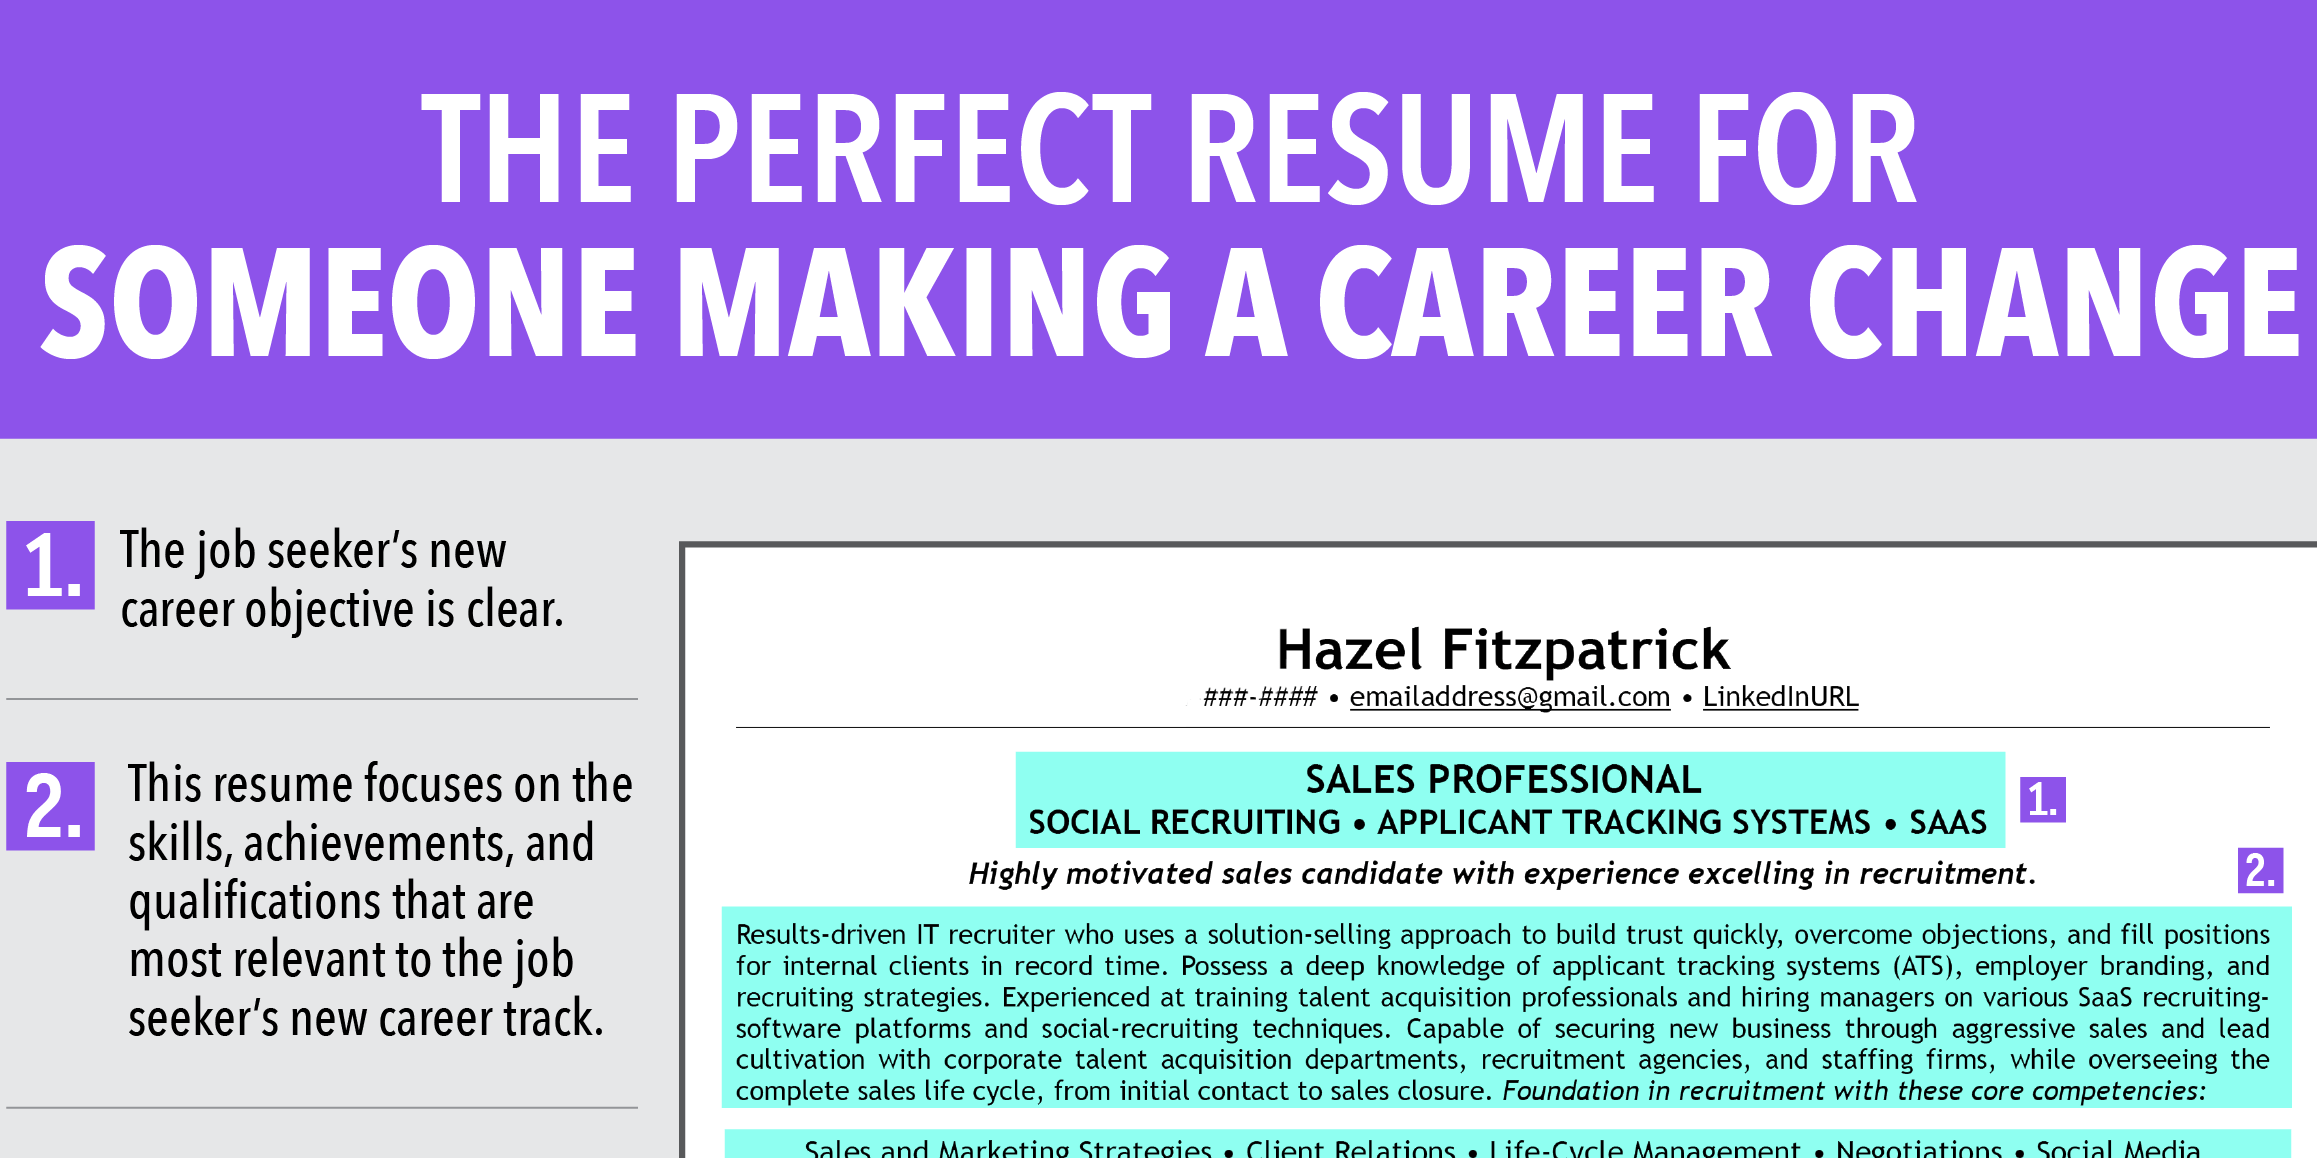 Ideal Resume For Someone Making A Career Change - Business Insider - career change resume objective